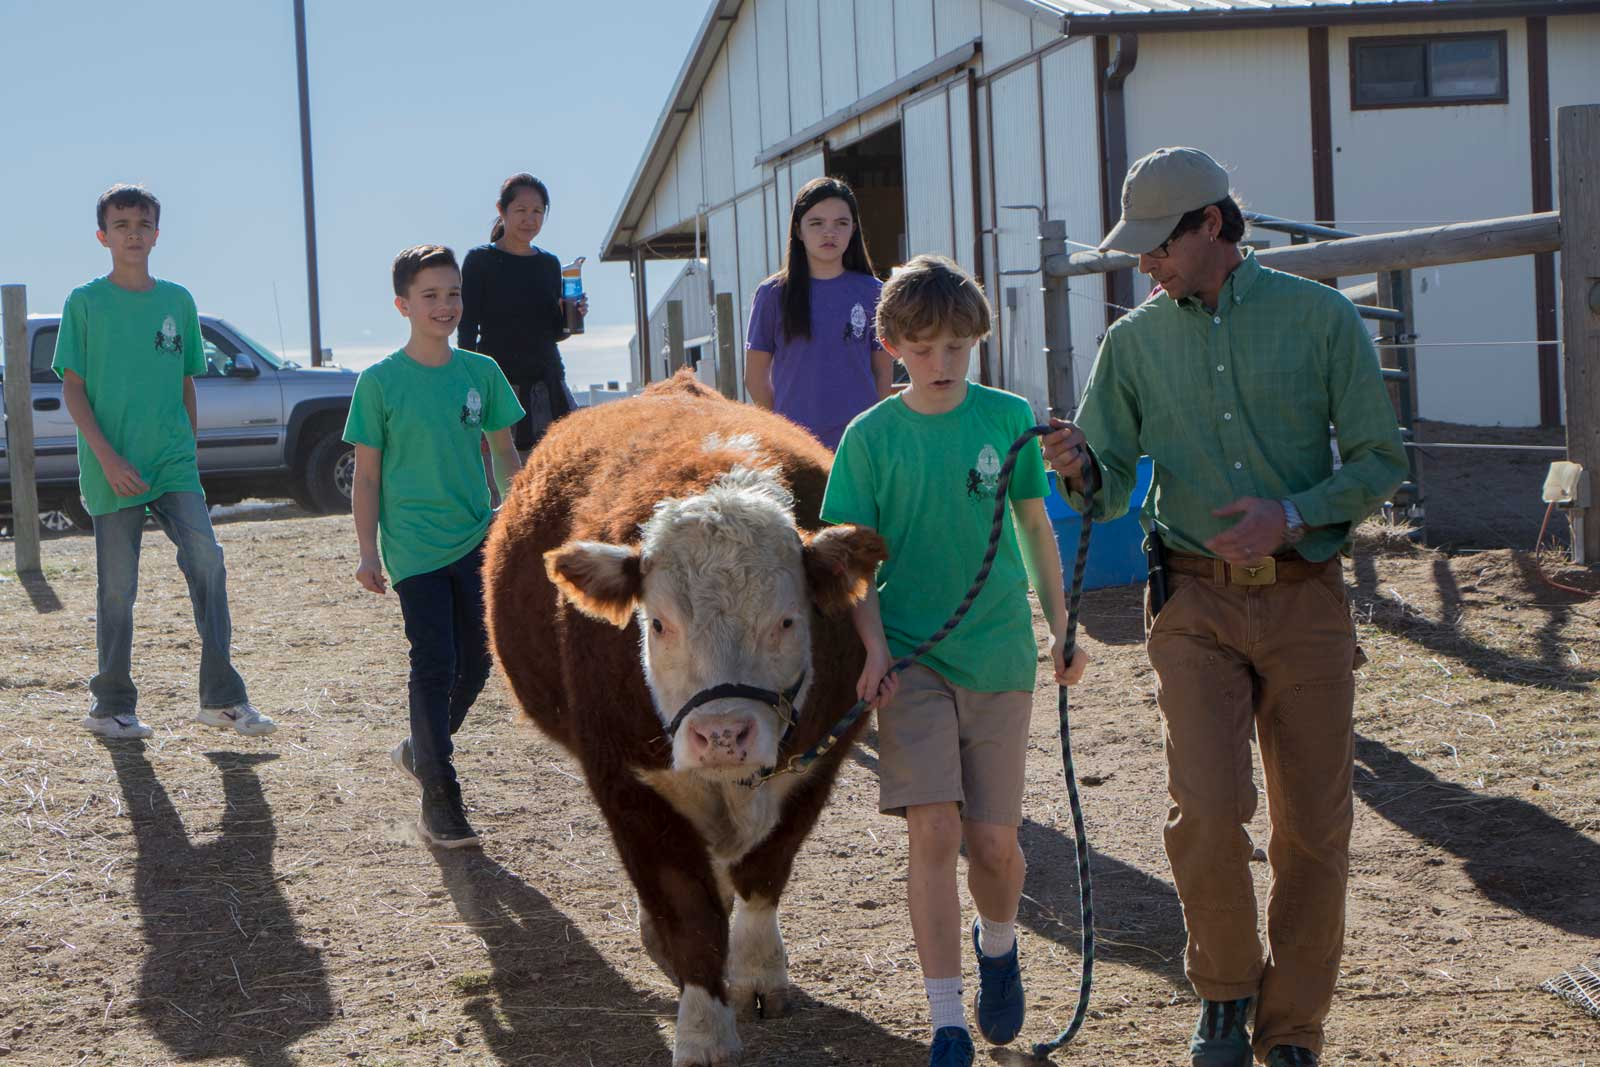 A kid and an adult farmer walking a cow as other kids watch